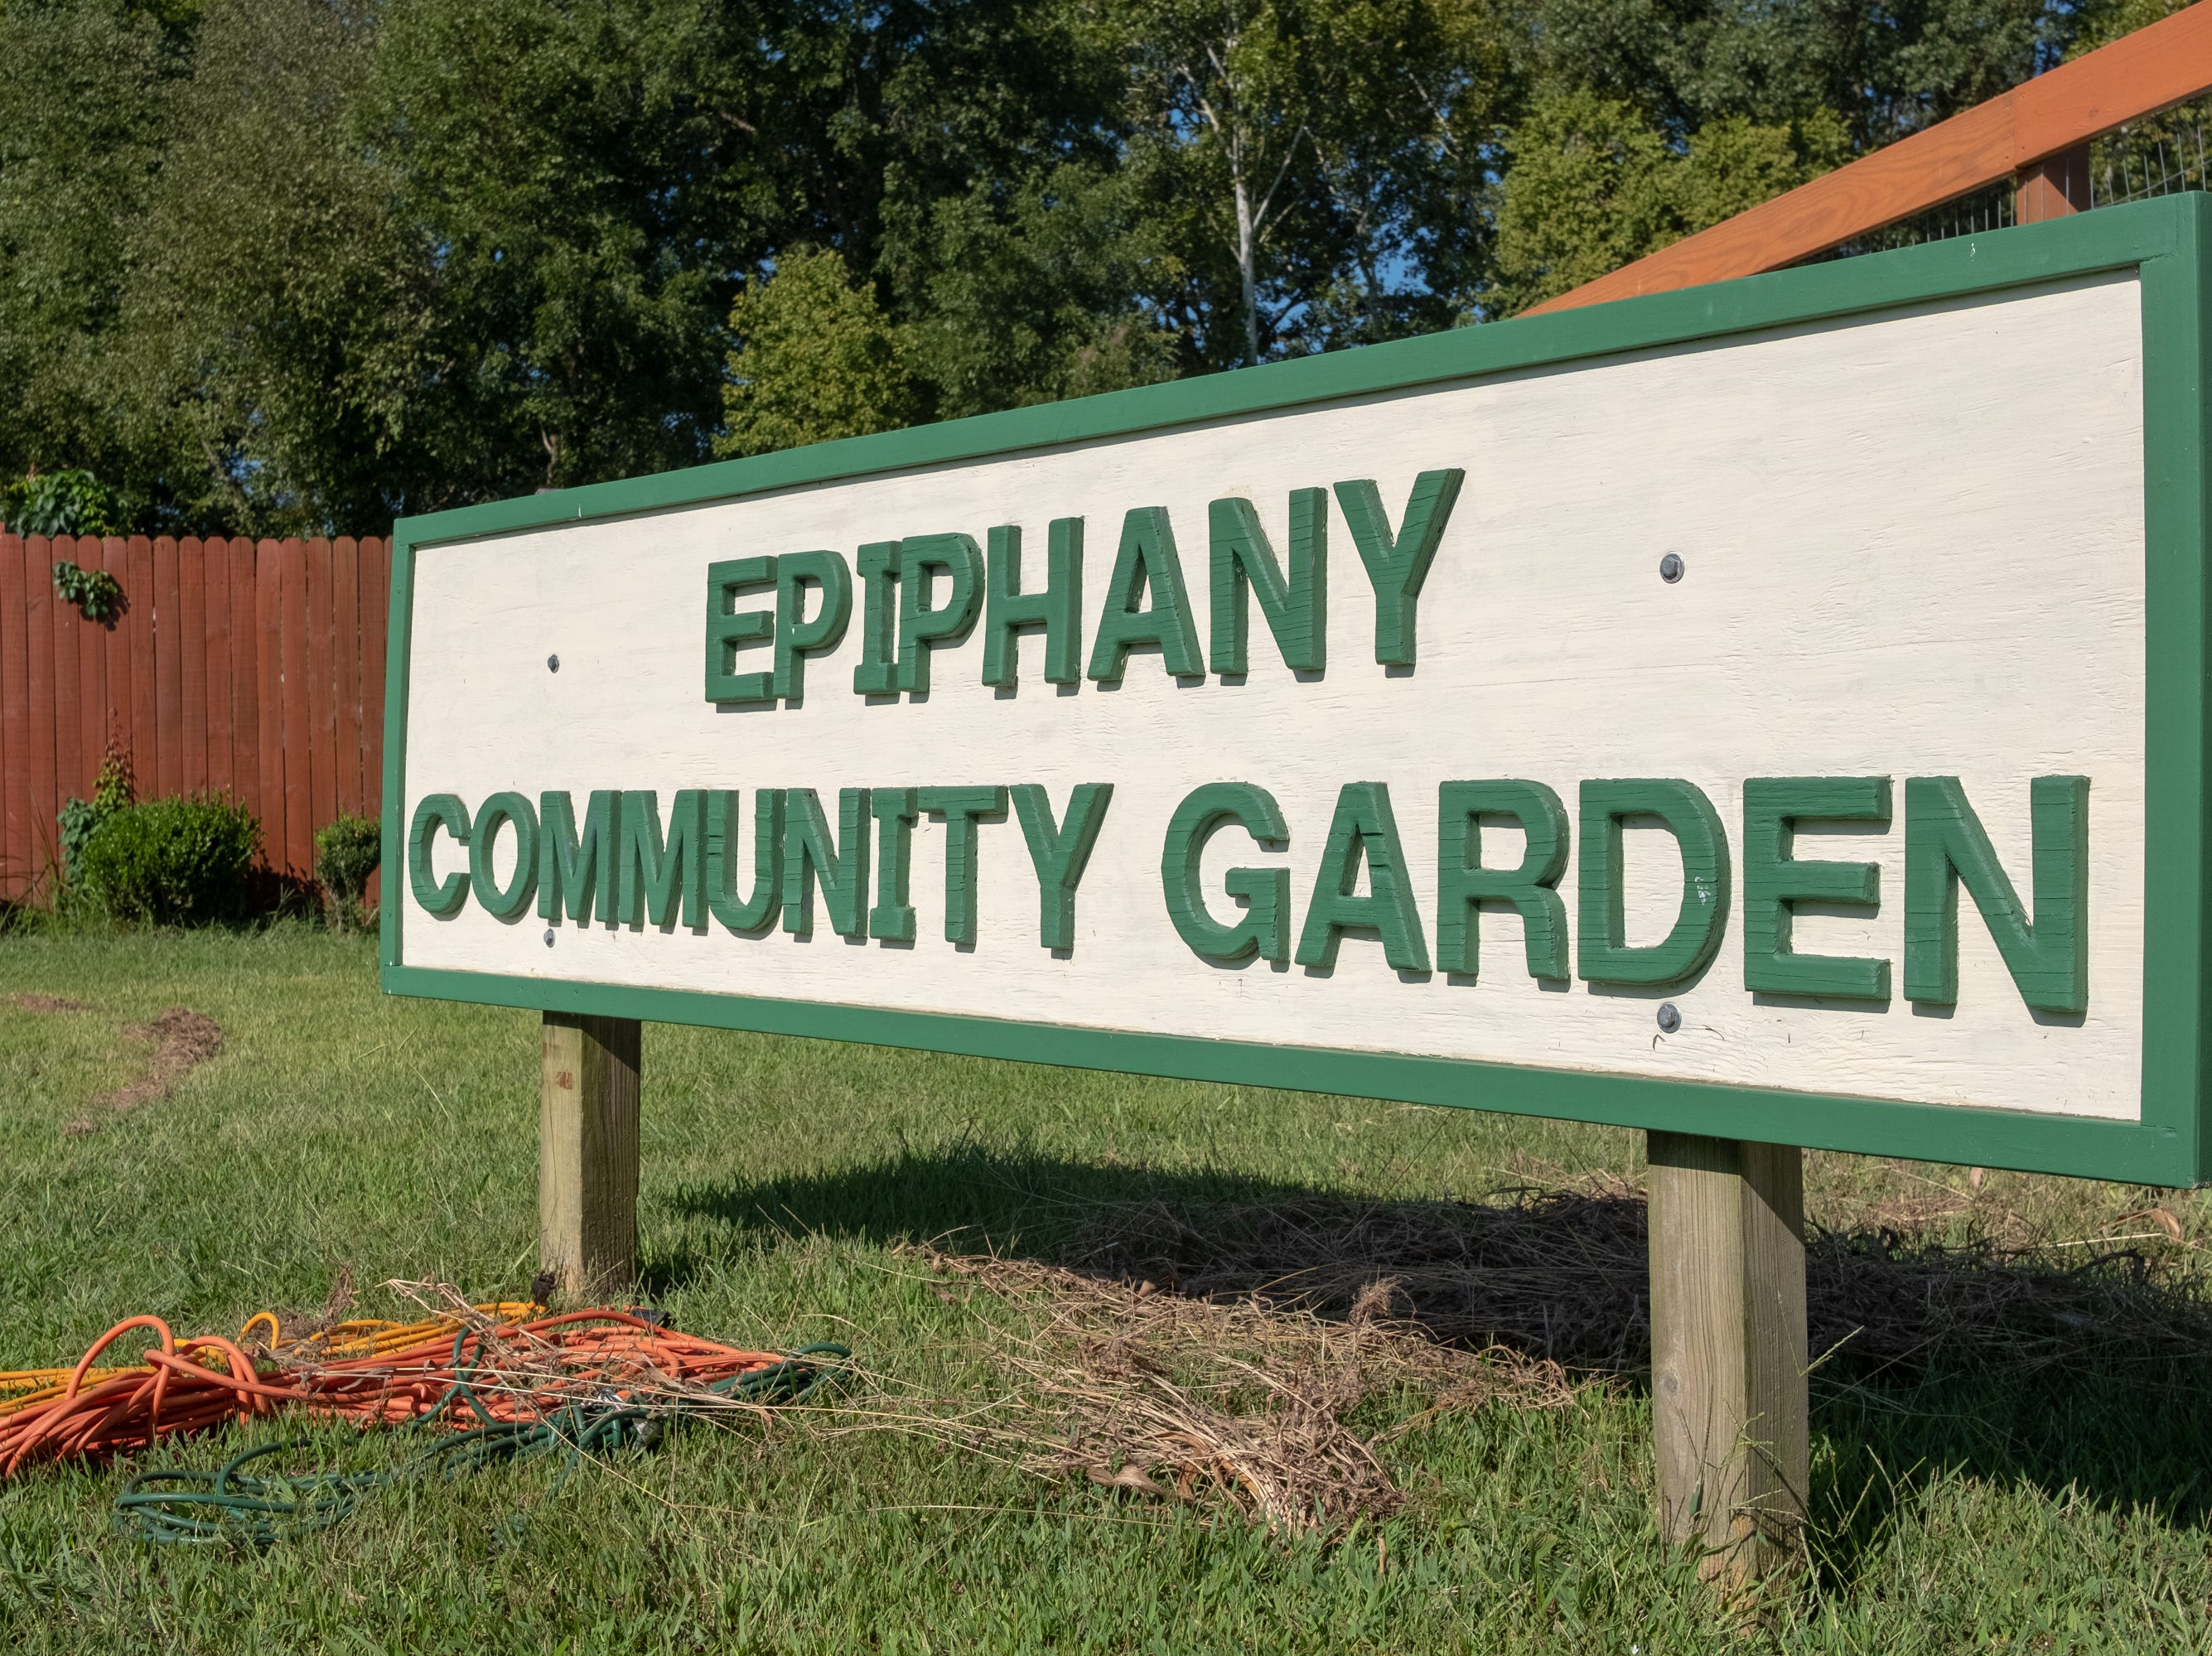 The Epiphany Community Garden is located in Collierville on Saturday, Sept. 15, 2018.. All food grown here is given away free to members of the community.